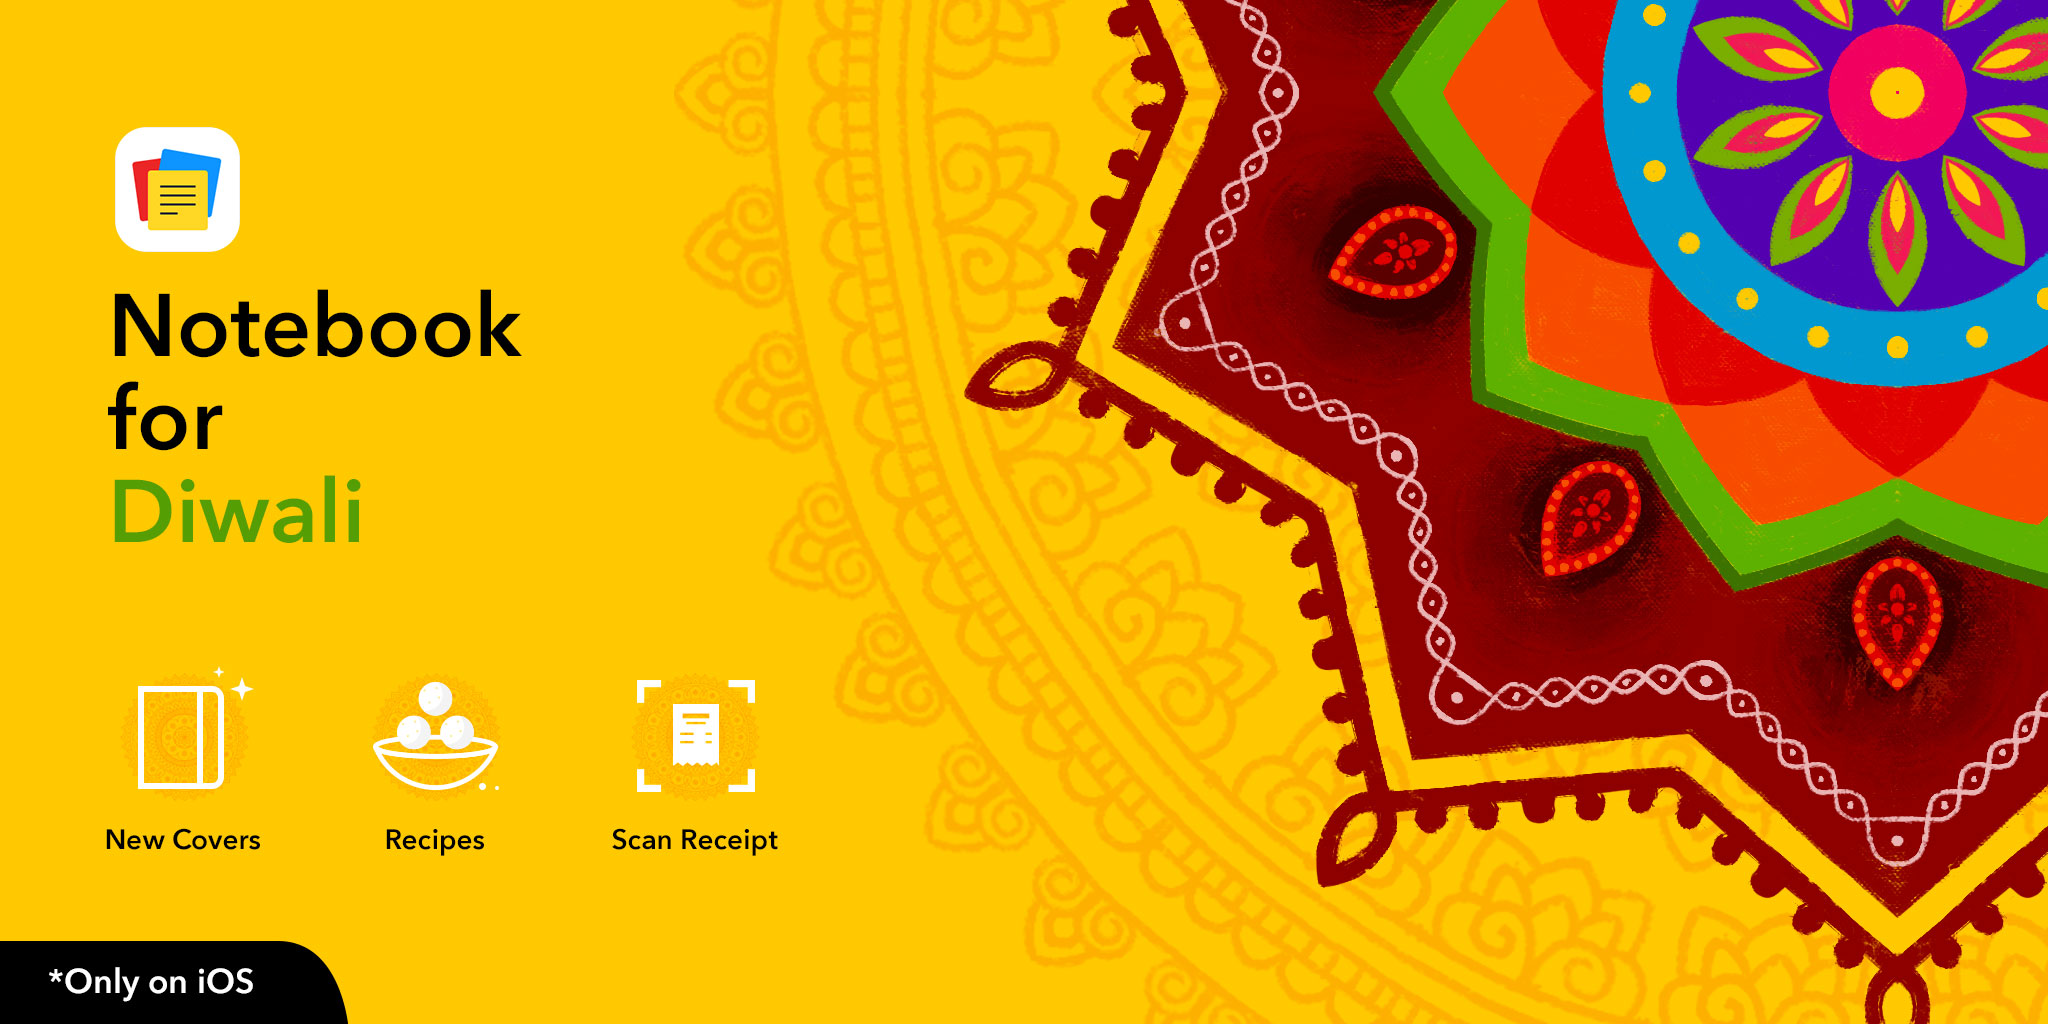 Notebook for iOS: Diwali Edition is here.